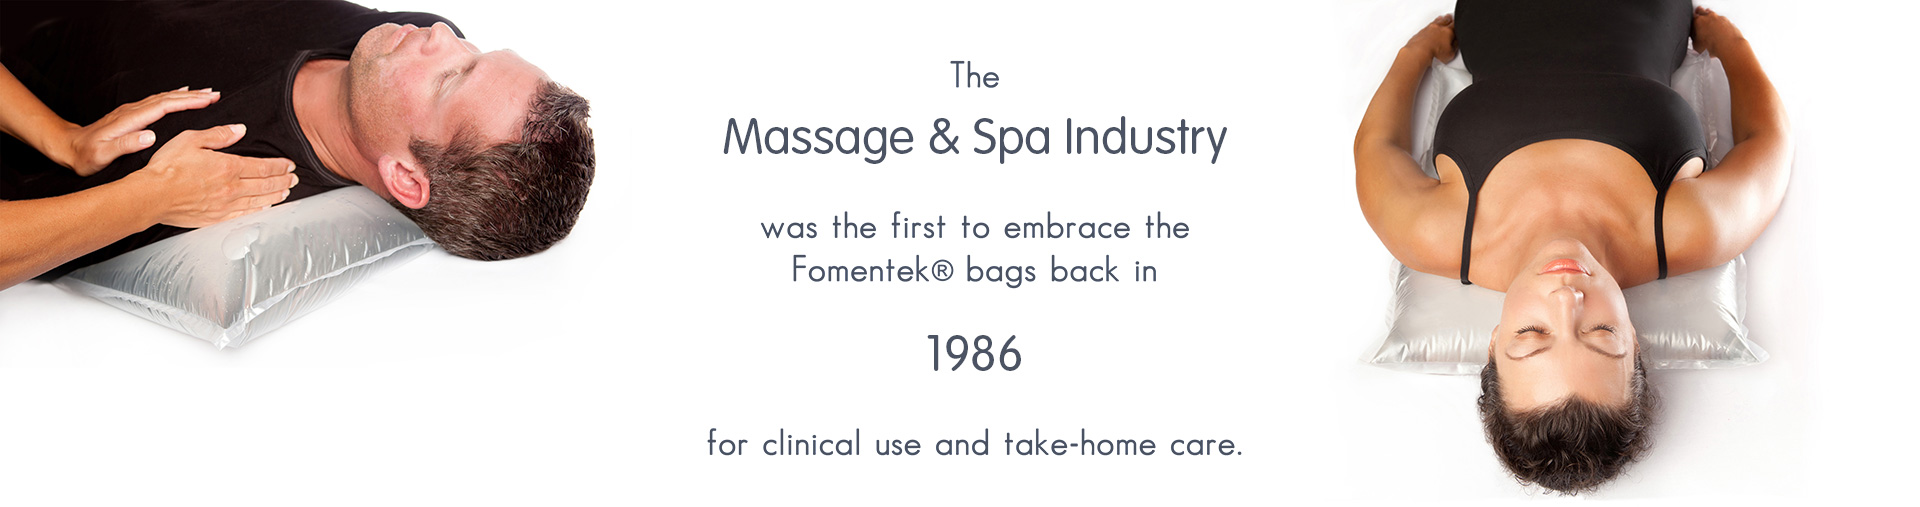 Massage & Spa Industry Banner by Amy